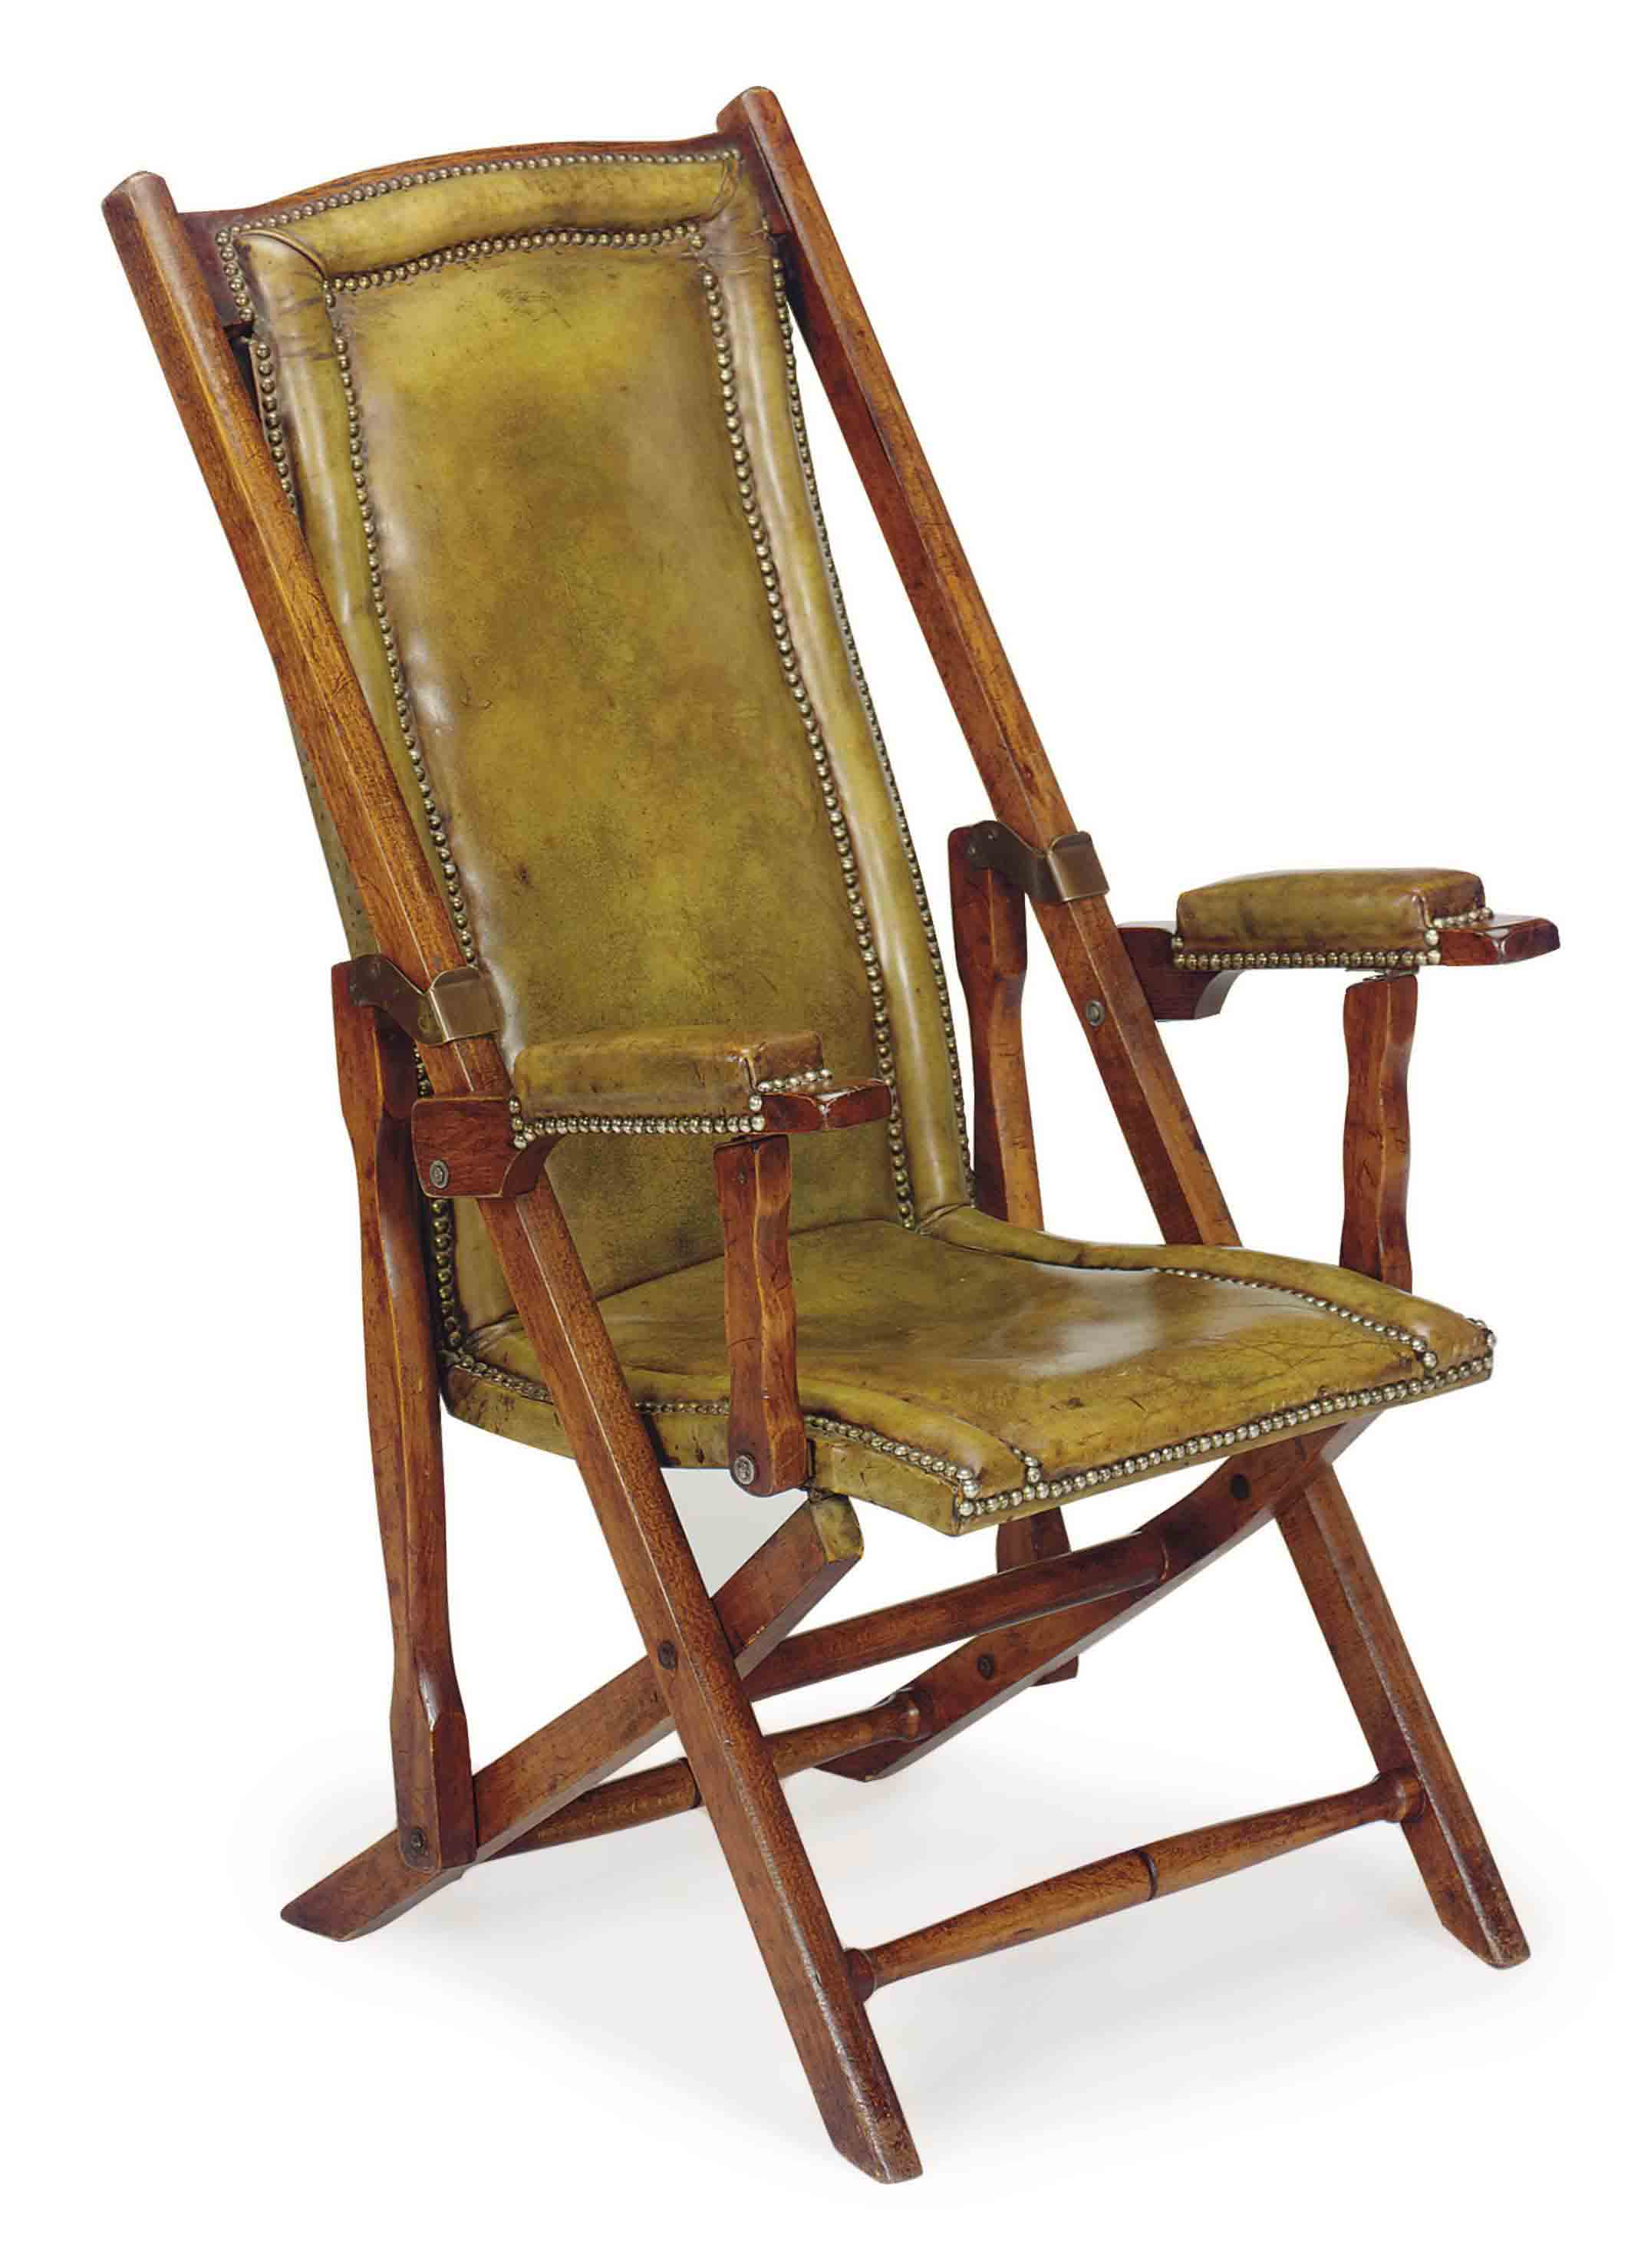 A FRENCH MAHOGANY AND CLOSE NAIL LEATHER-COVERED RECLINING ARMCHAIR,